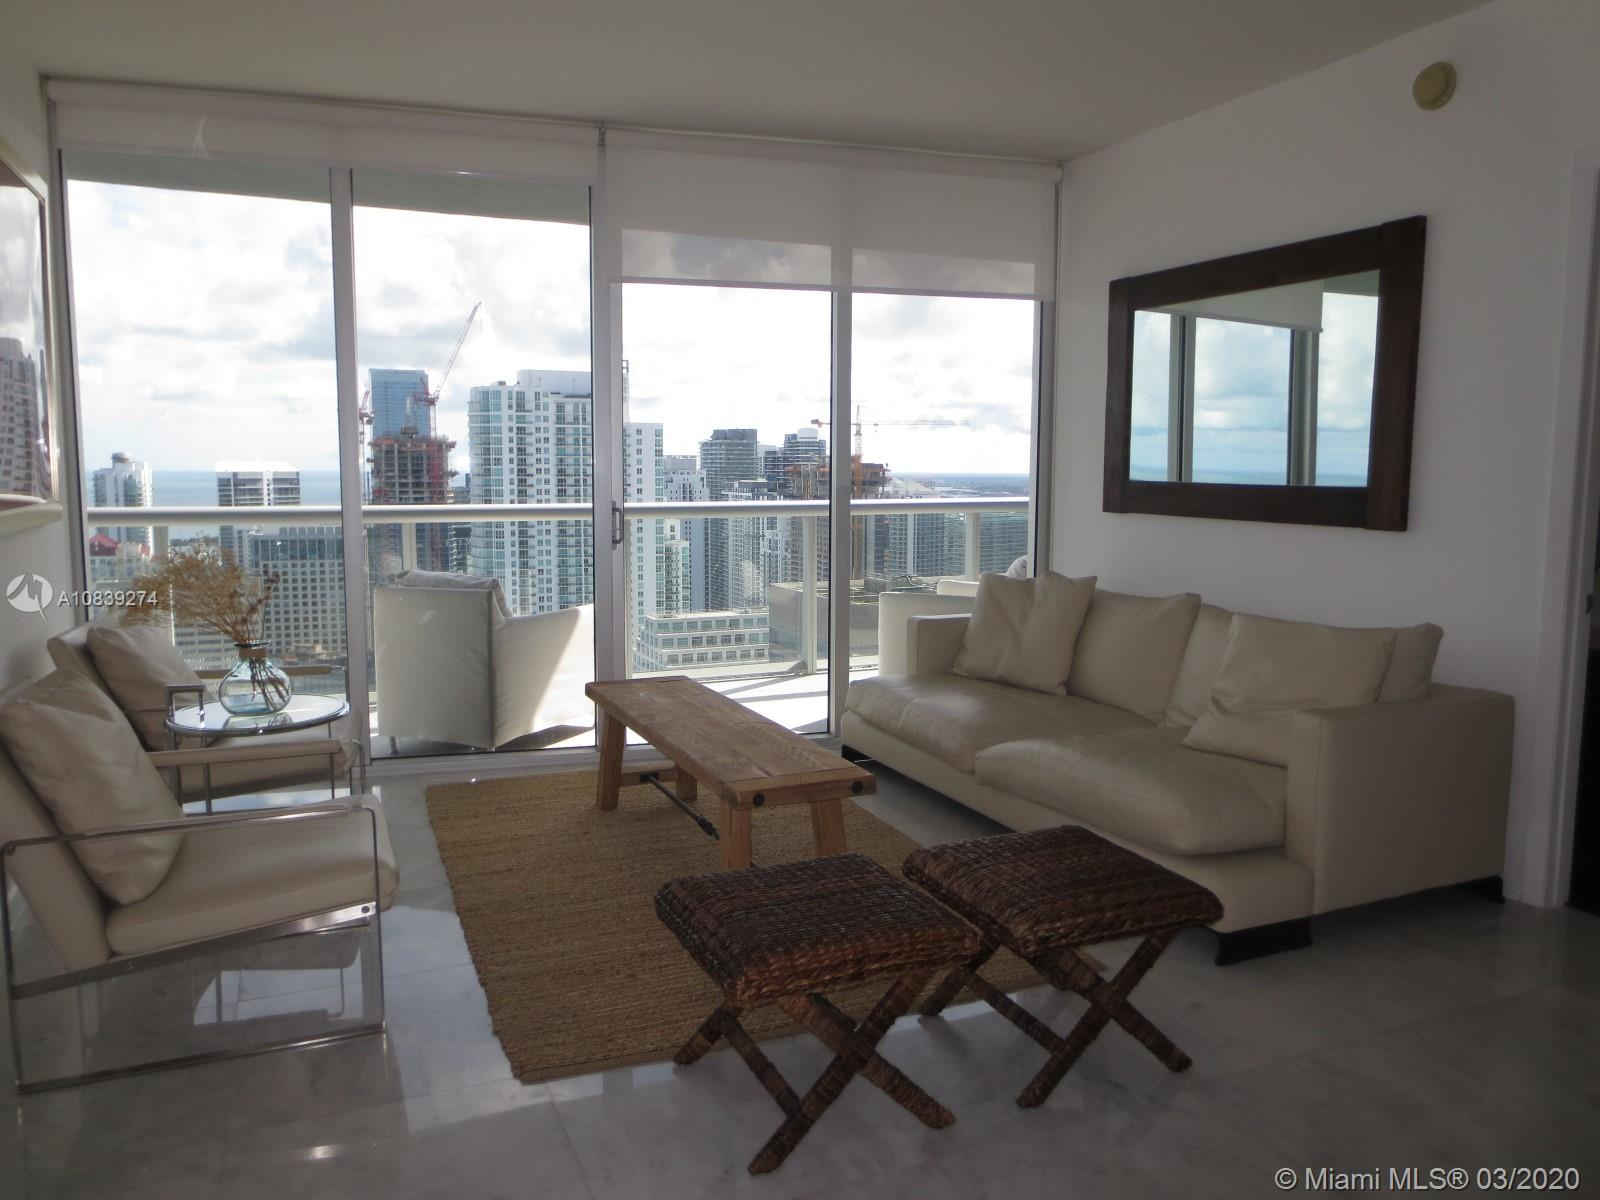 495  Brickell Ave #5003 For Sale A10839274, FL